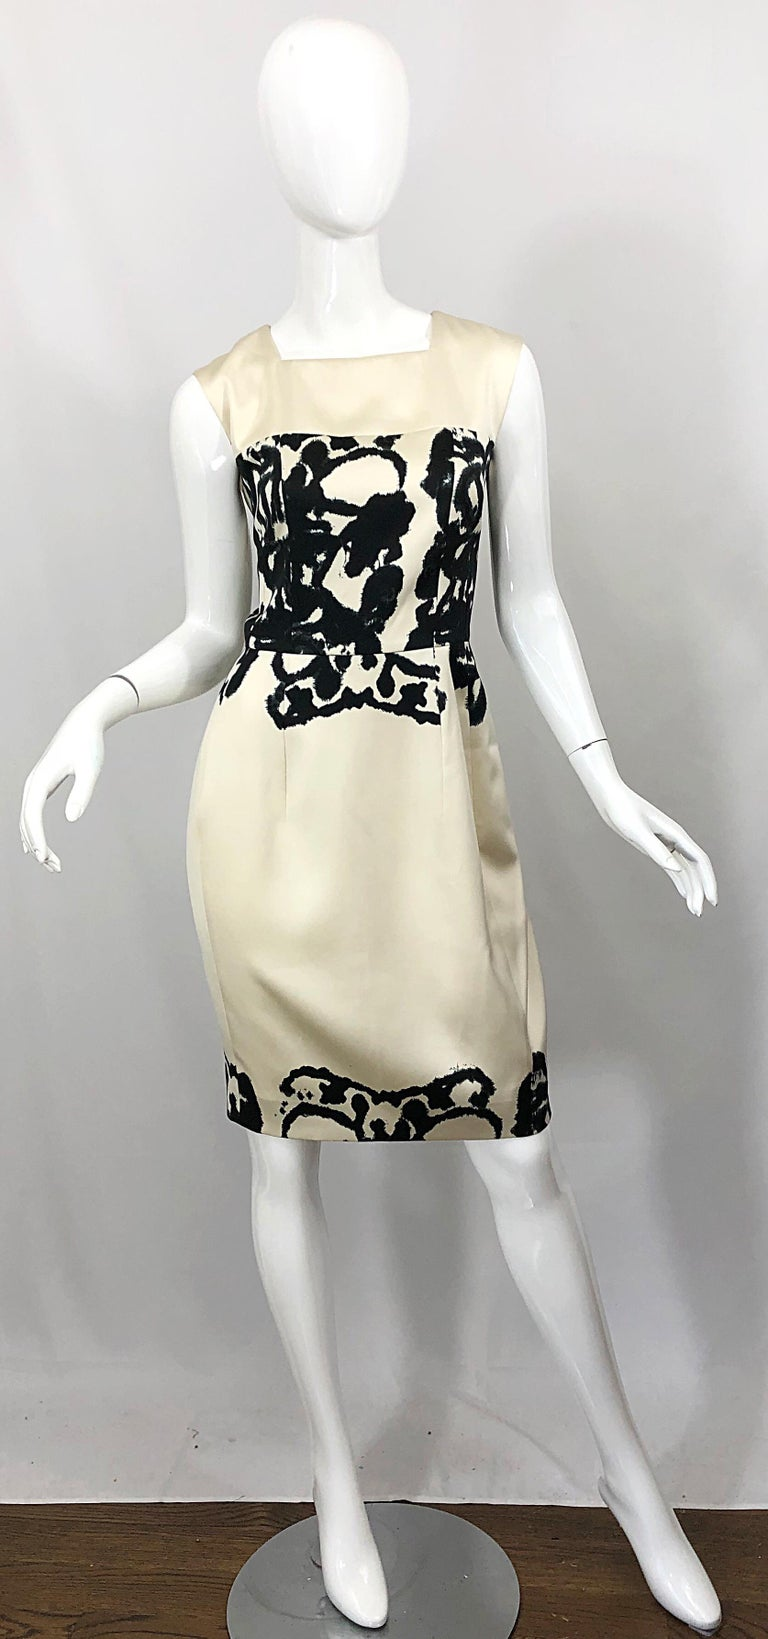 New Yves Saint Laurent Size 42 / 8-10 Ivory and Black Abstract Print Silk Dress For Sale 10